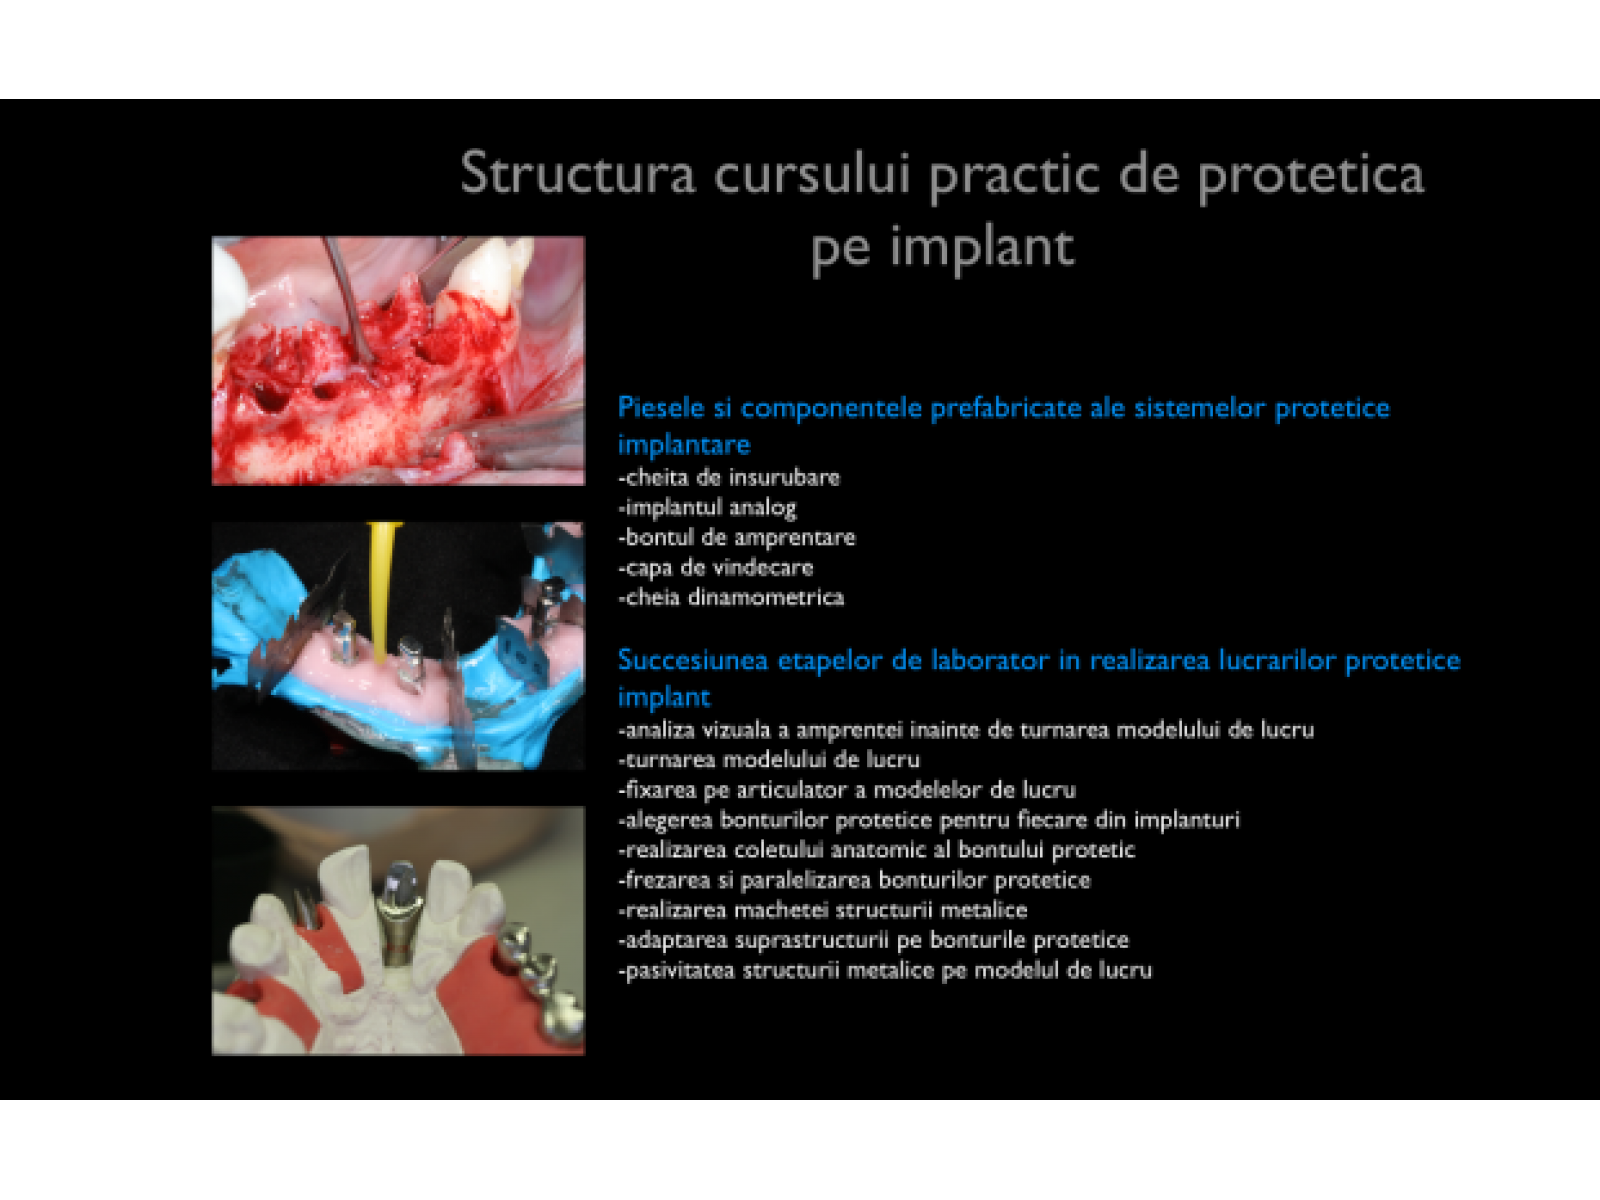 Clinica Dr. Dragus - Screen_Shot_2014-02-12_at_6.23.59_PM_Redimensionata.png